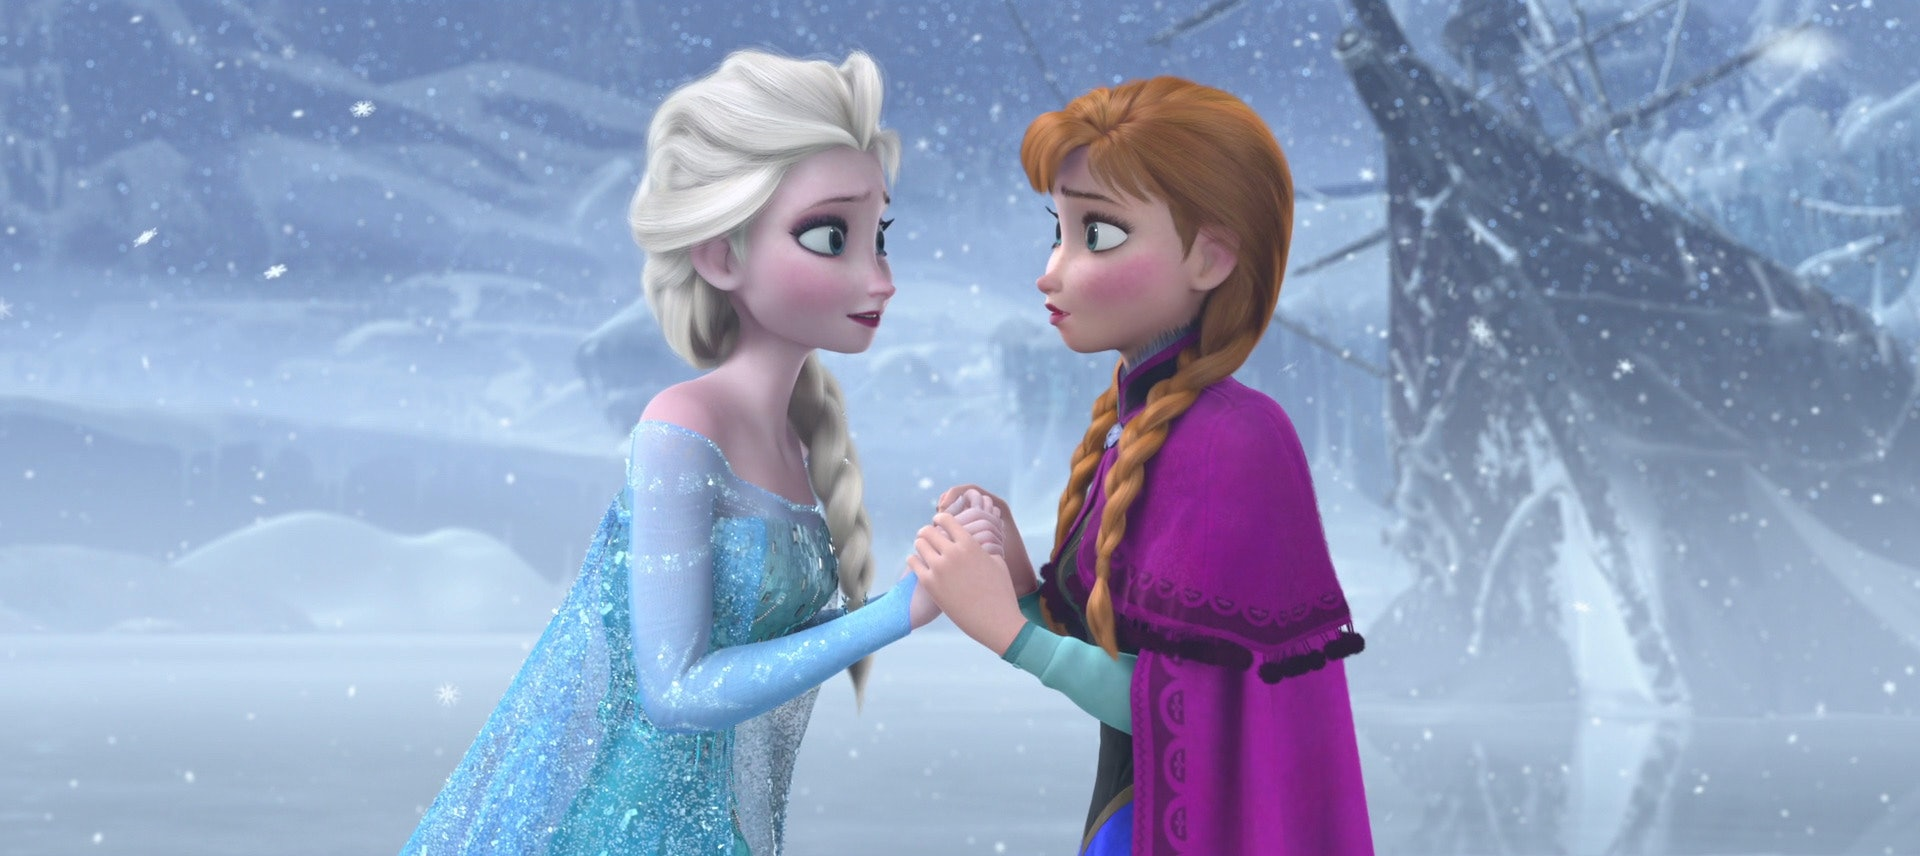 frozen quotes for instagram all the winter activities to come